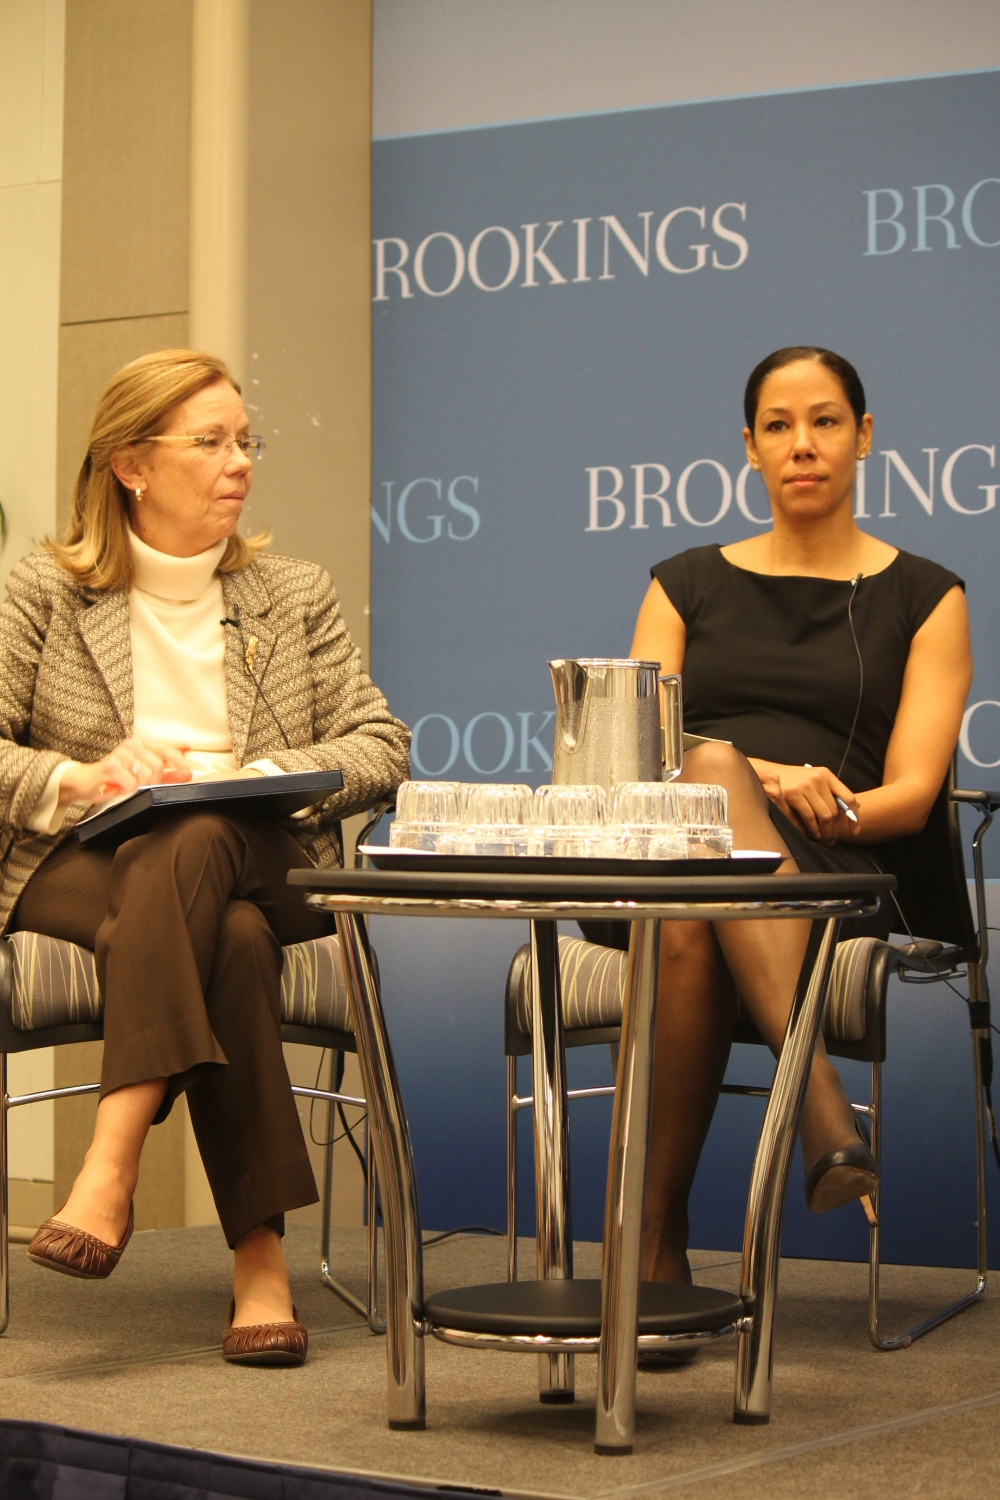 Two panelists at the Brookings Institution Discussion, A Poverty and Opportunity Agenda: What's in Store for the Next Four Years? Left to Right, JoAnne Barnhart and Mona Sutphen. Dec. 5 2012 in Washington D.C.